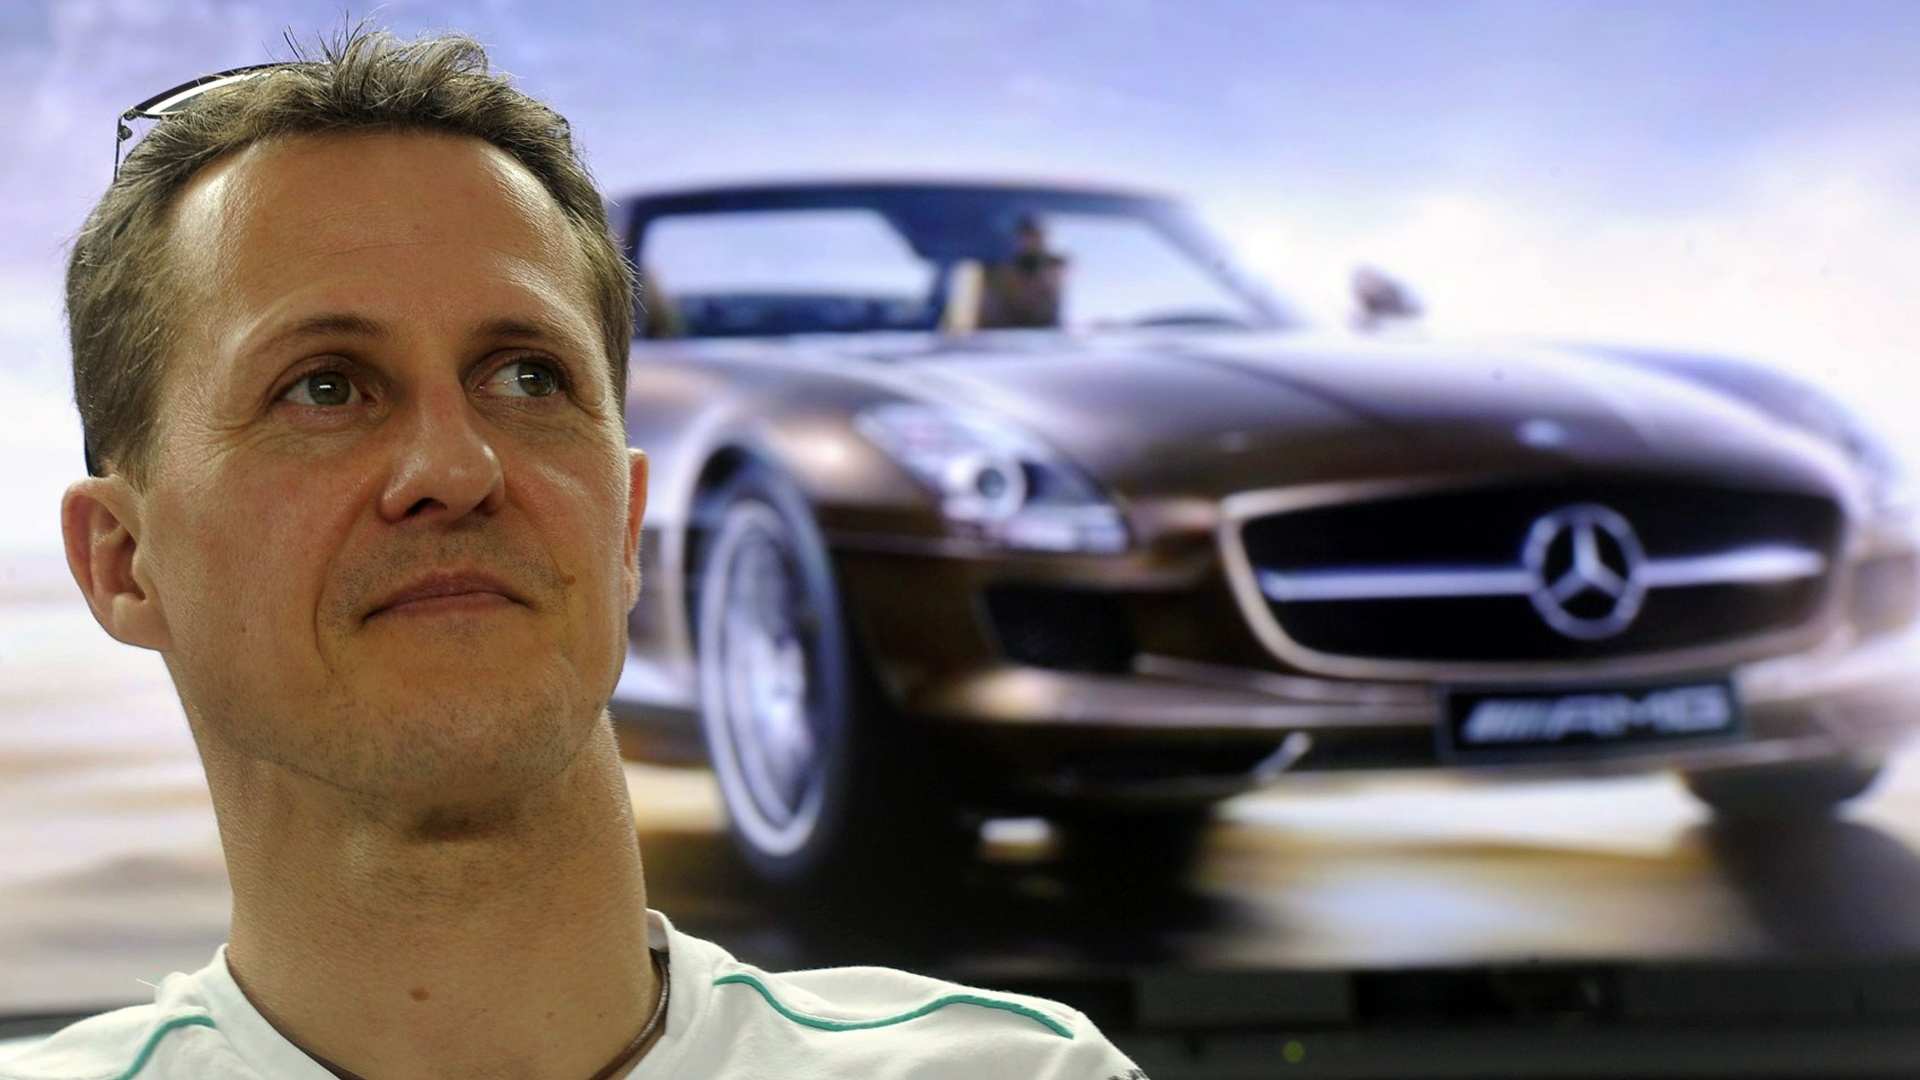 Michael Schumacher visitou a fbrica da Mercedes na Malsia, onde ser disputada a segunda etapa do Mundial de F-1